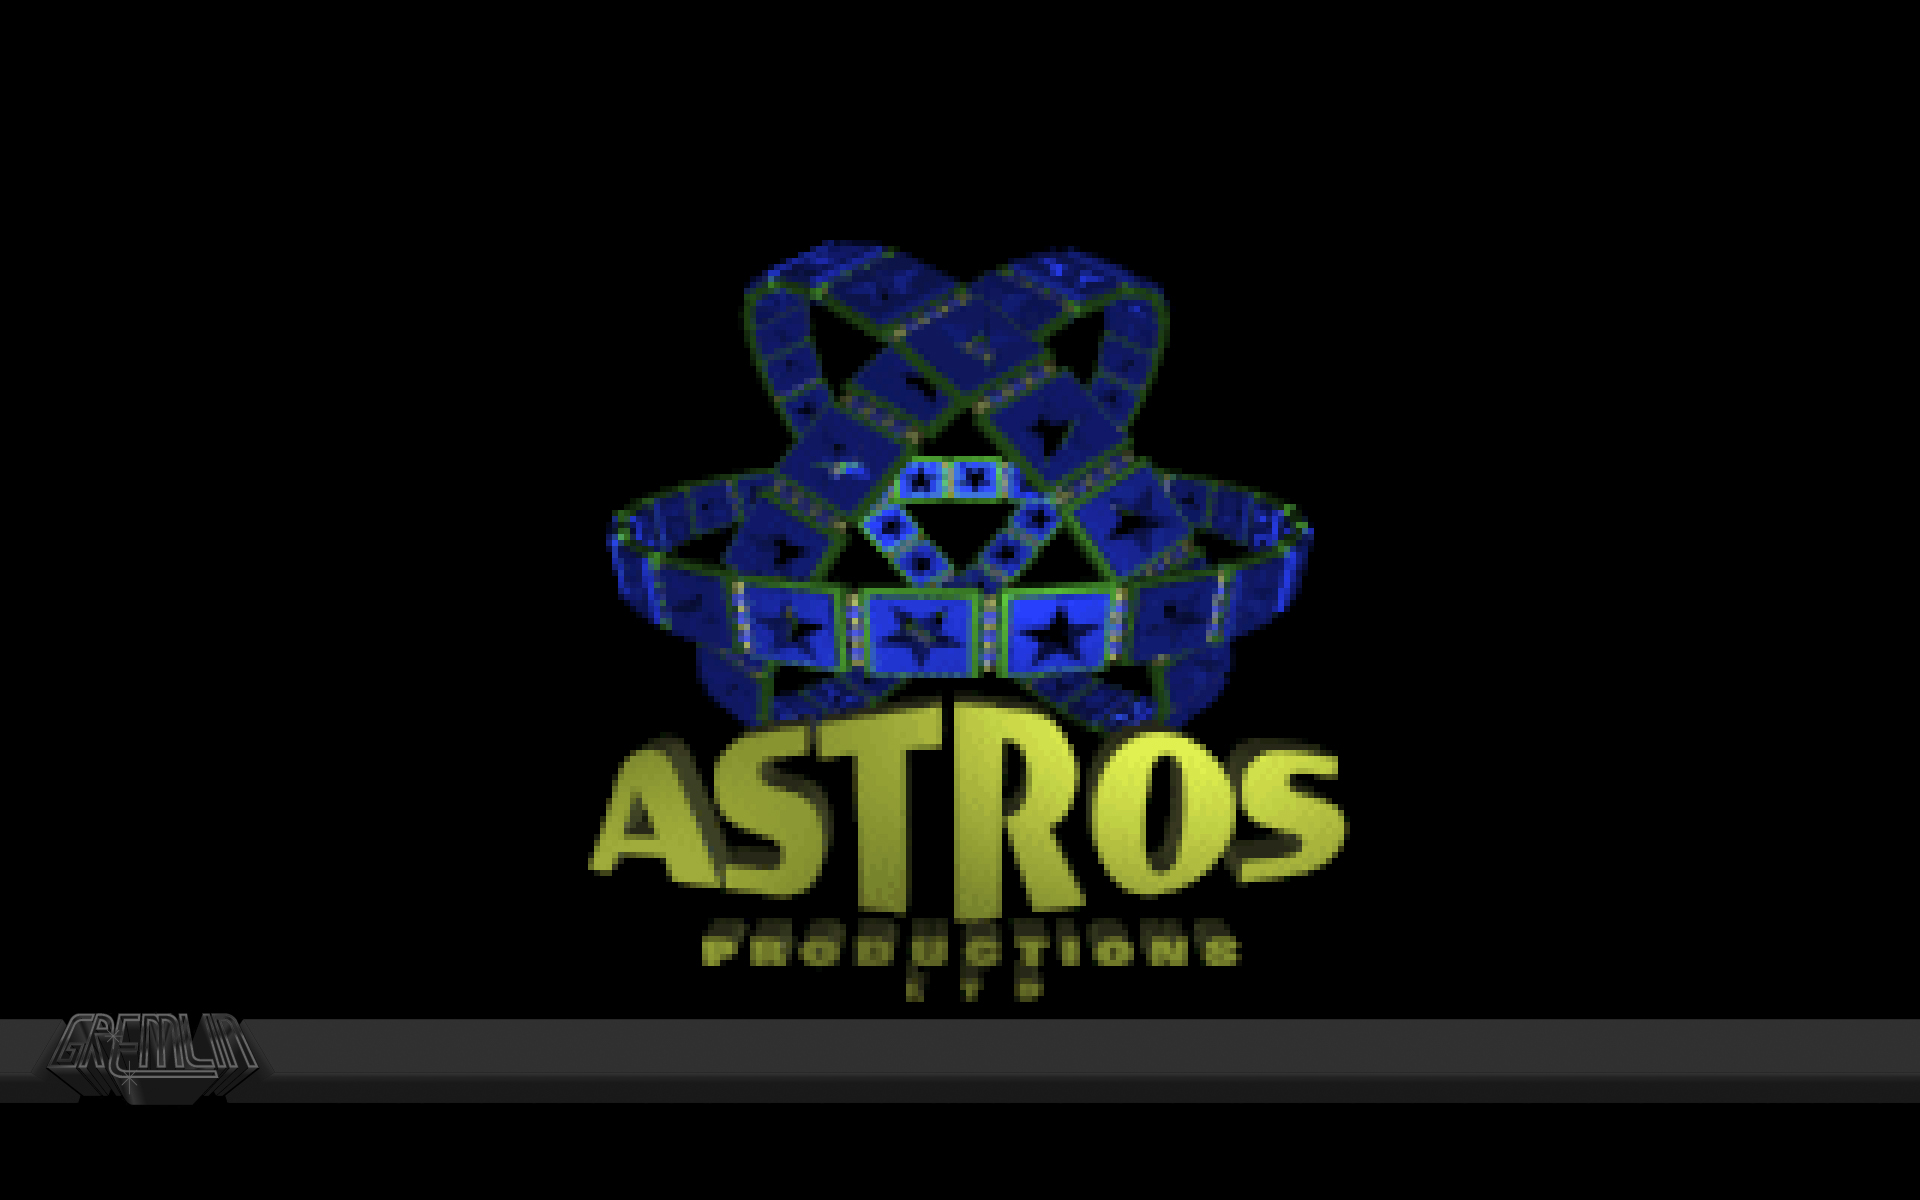 Astros Productions Logo